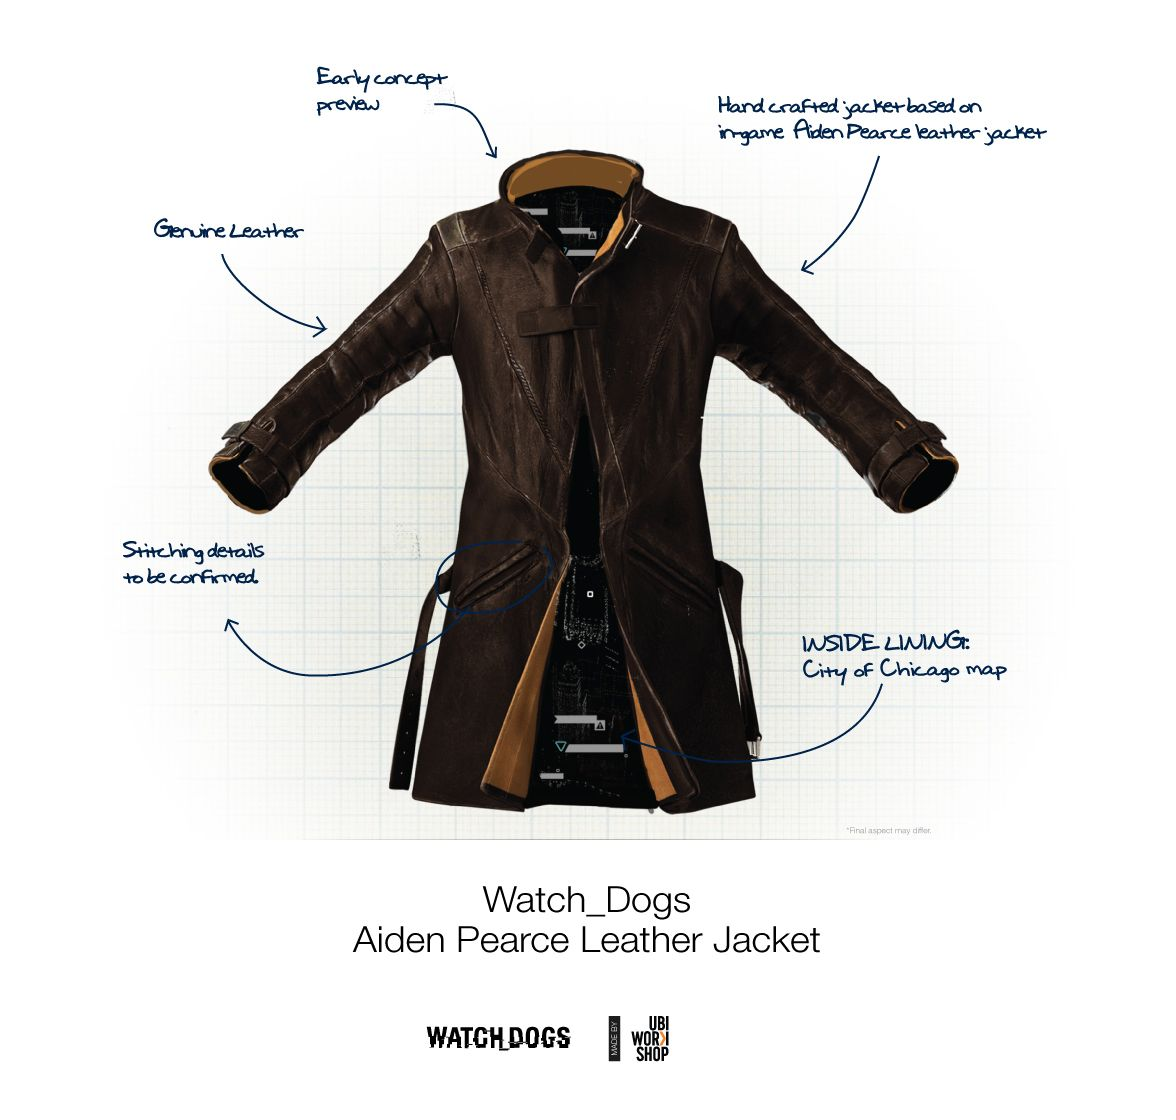 Leather jacket for dogs - Ubiworkshop Watch Dogs Aiden Pearce Leather Jacket